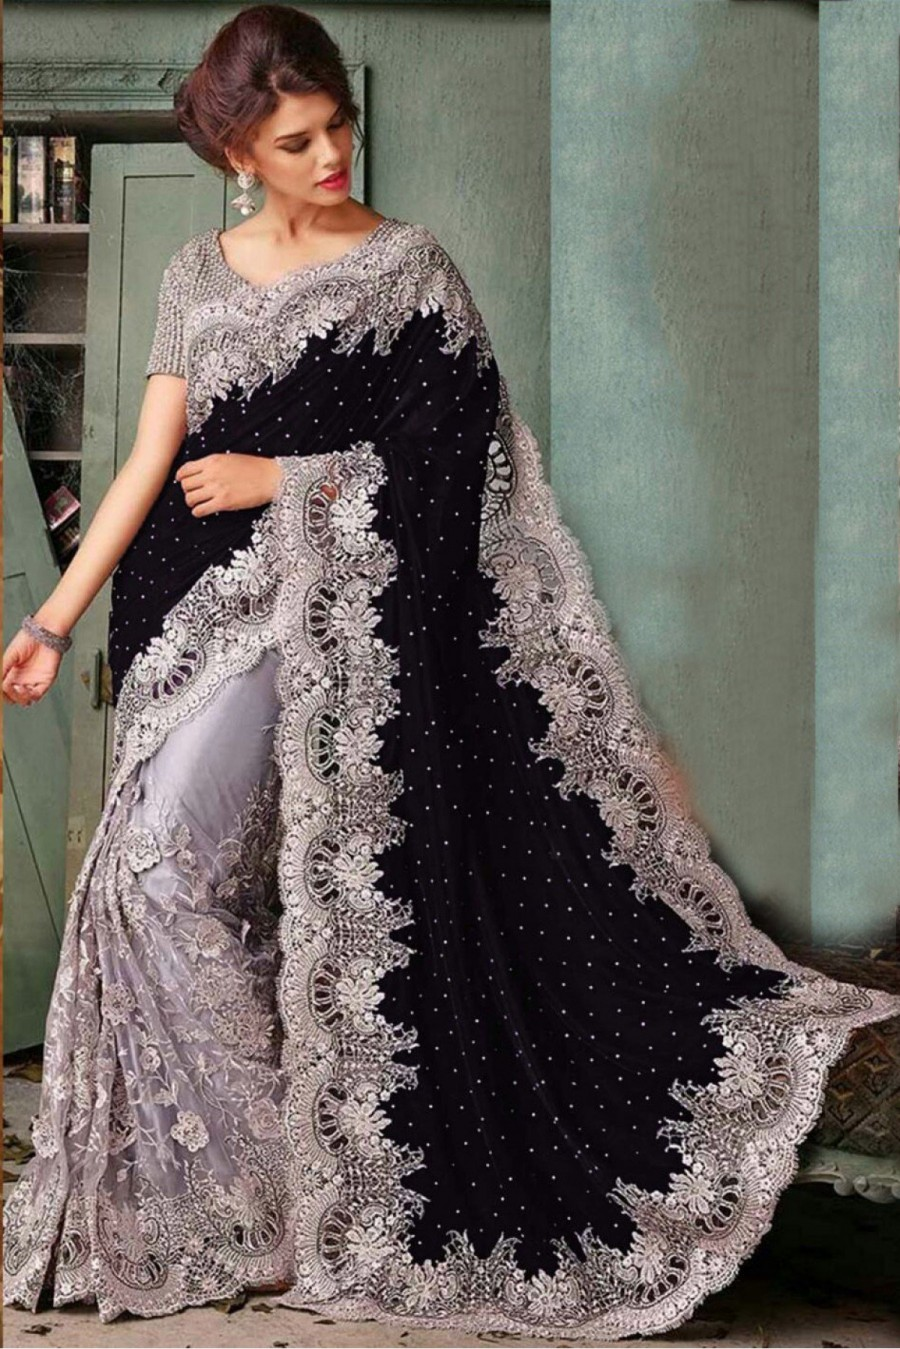 Buy Online Bollywood Style Model Velvet Party Wear Saree In Black And Silver Colour Nc2560at Best Price 545678